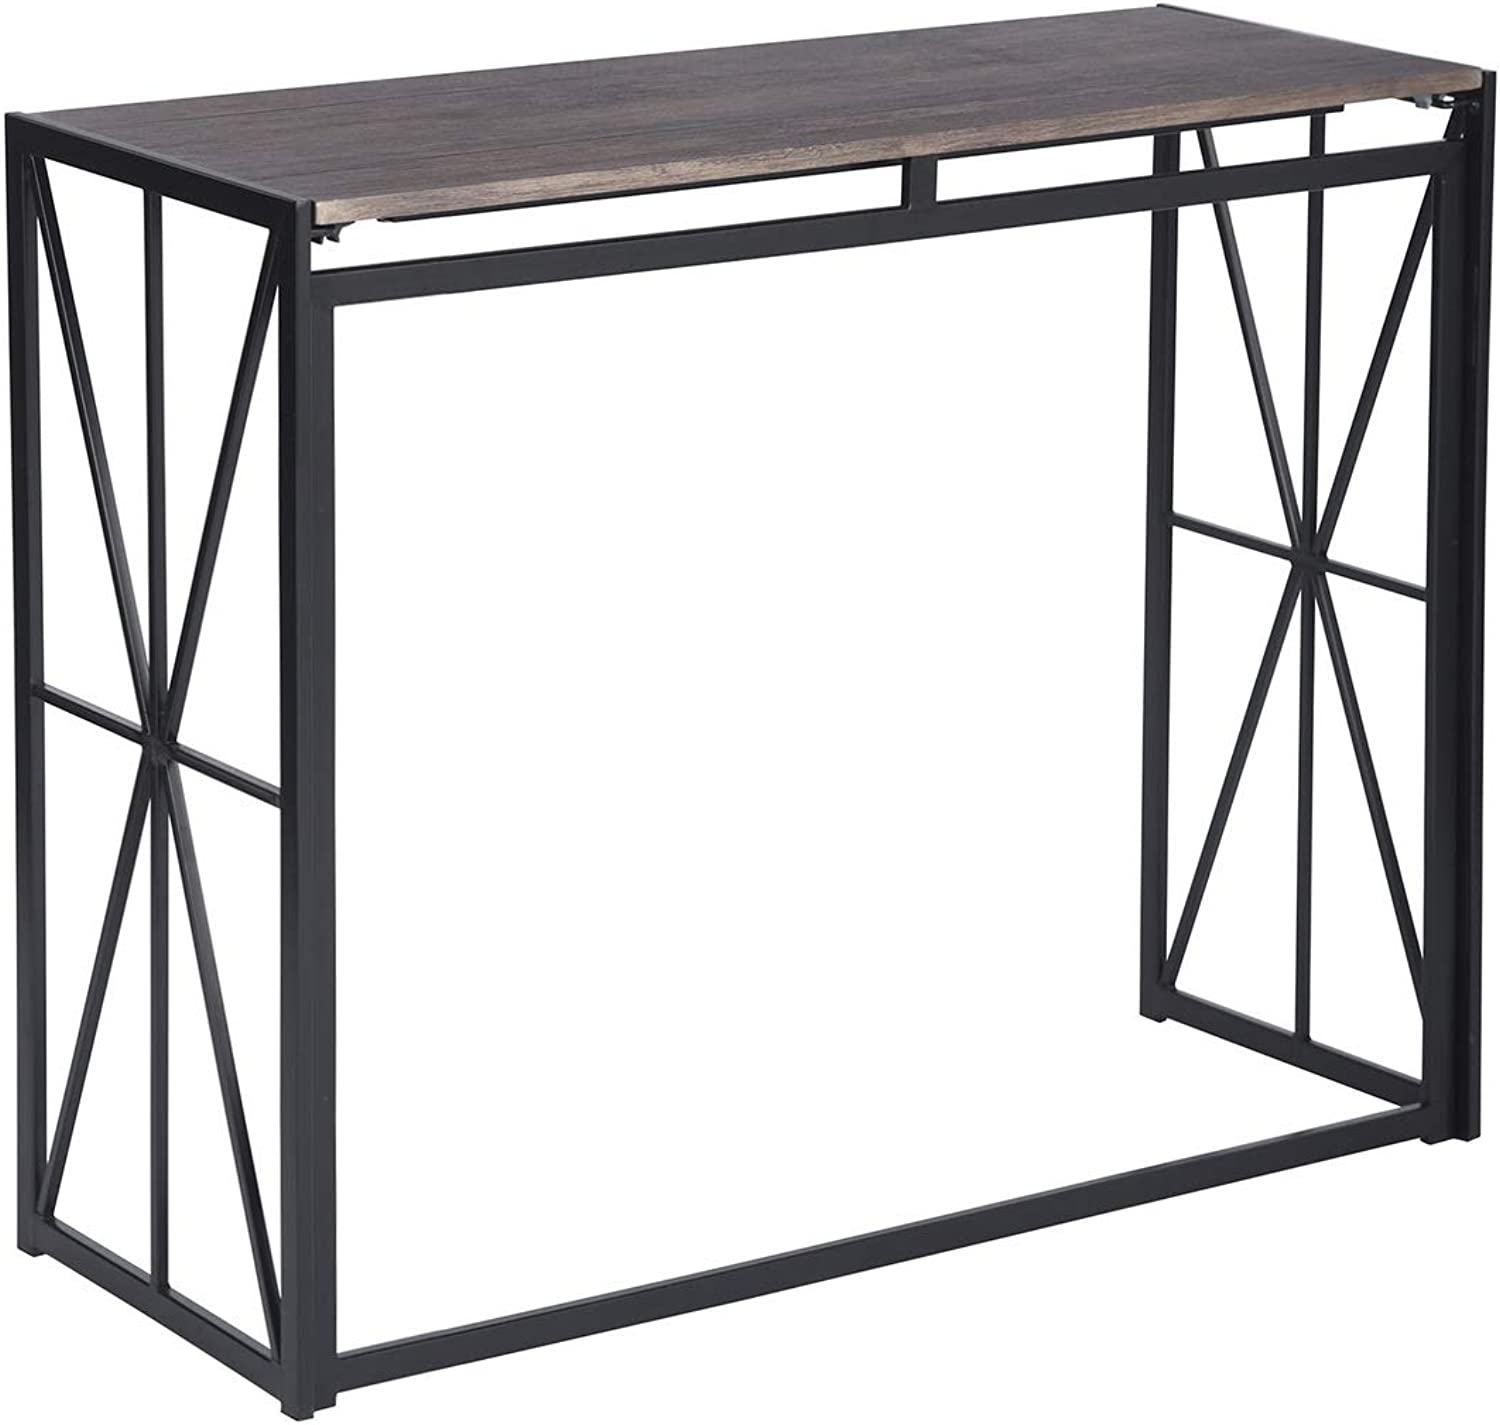 Rectangular Console Table - Metal